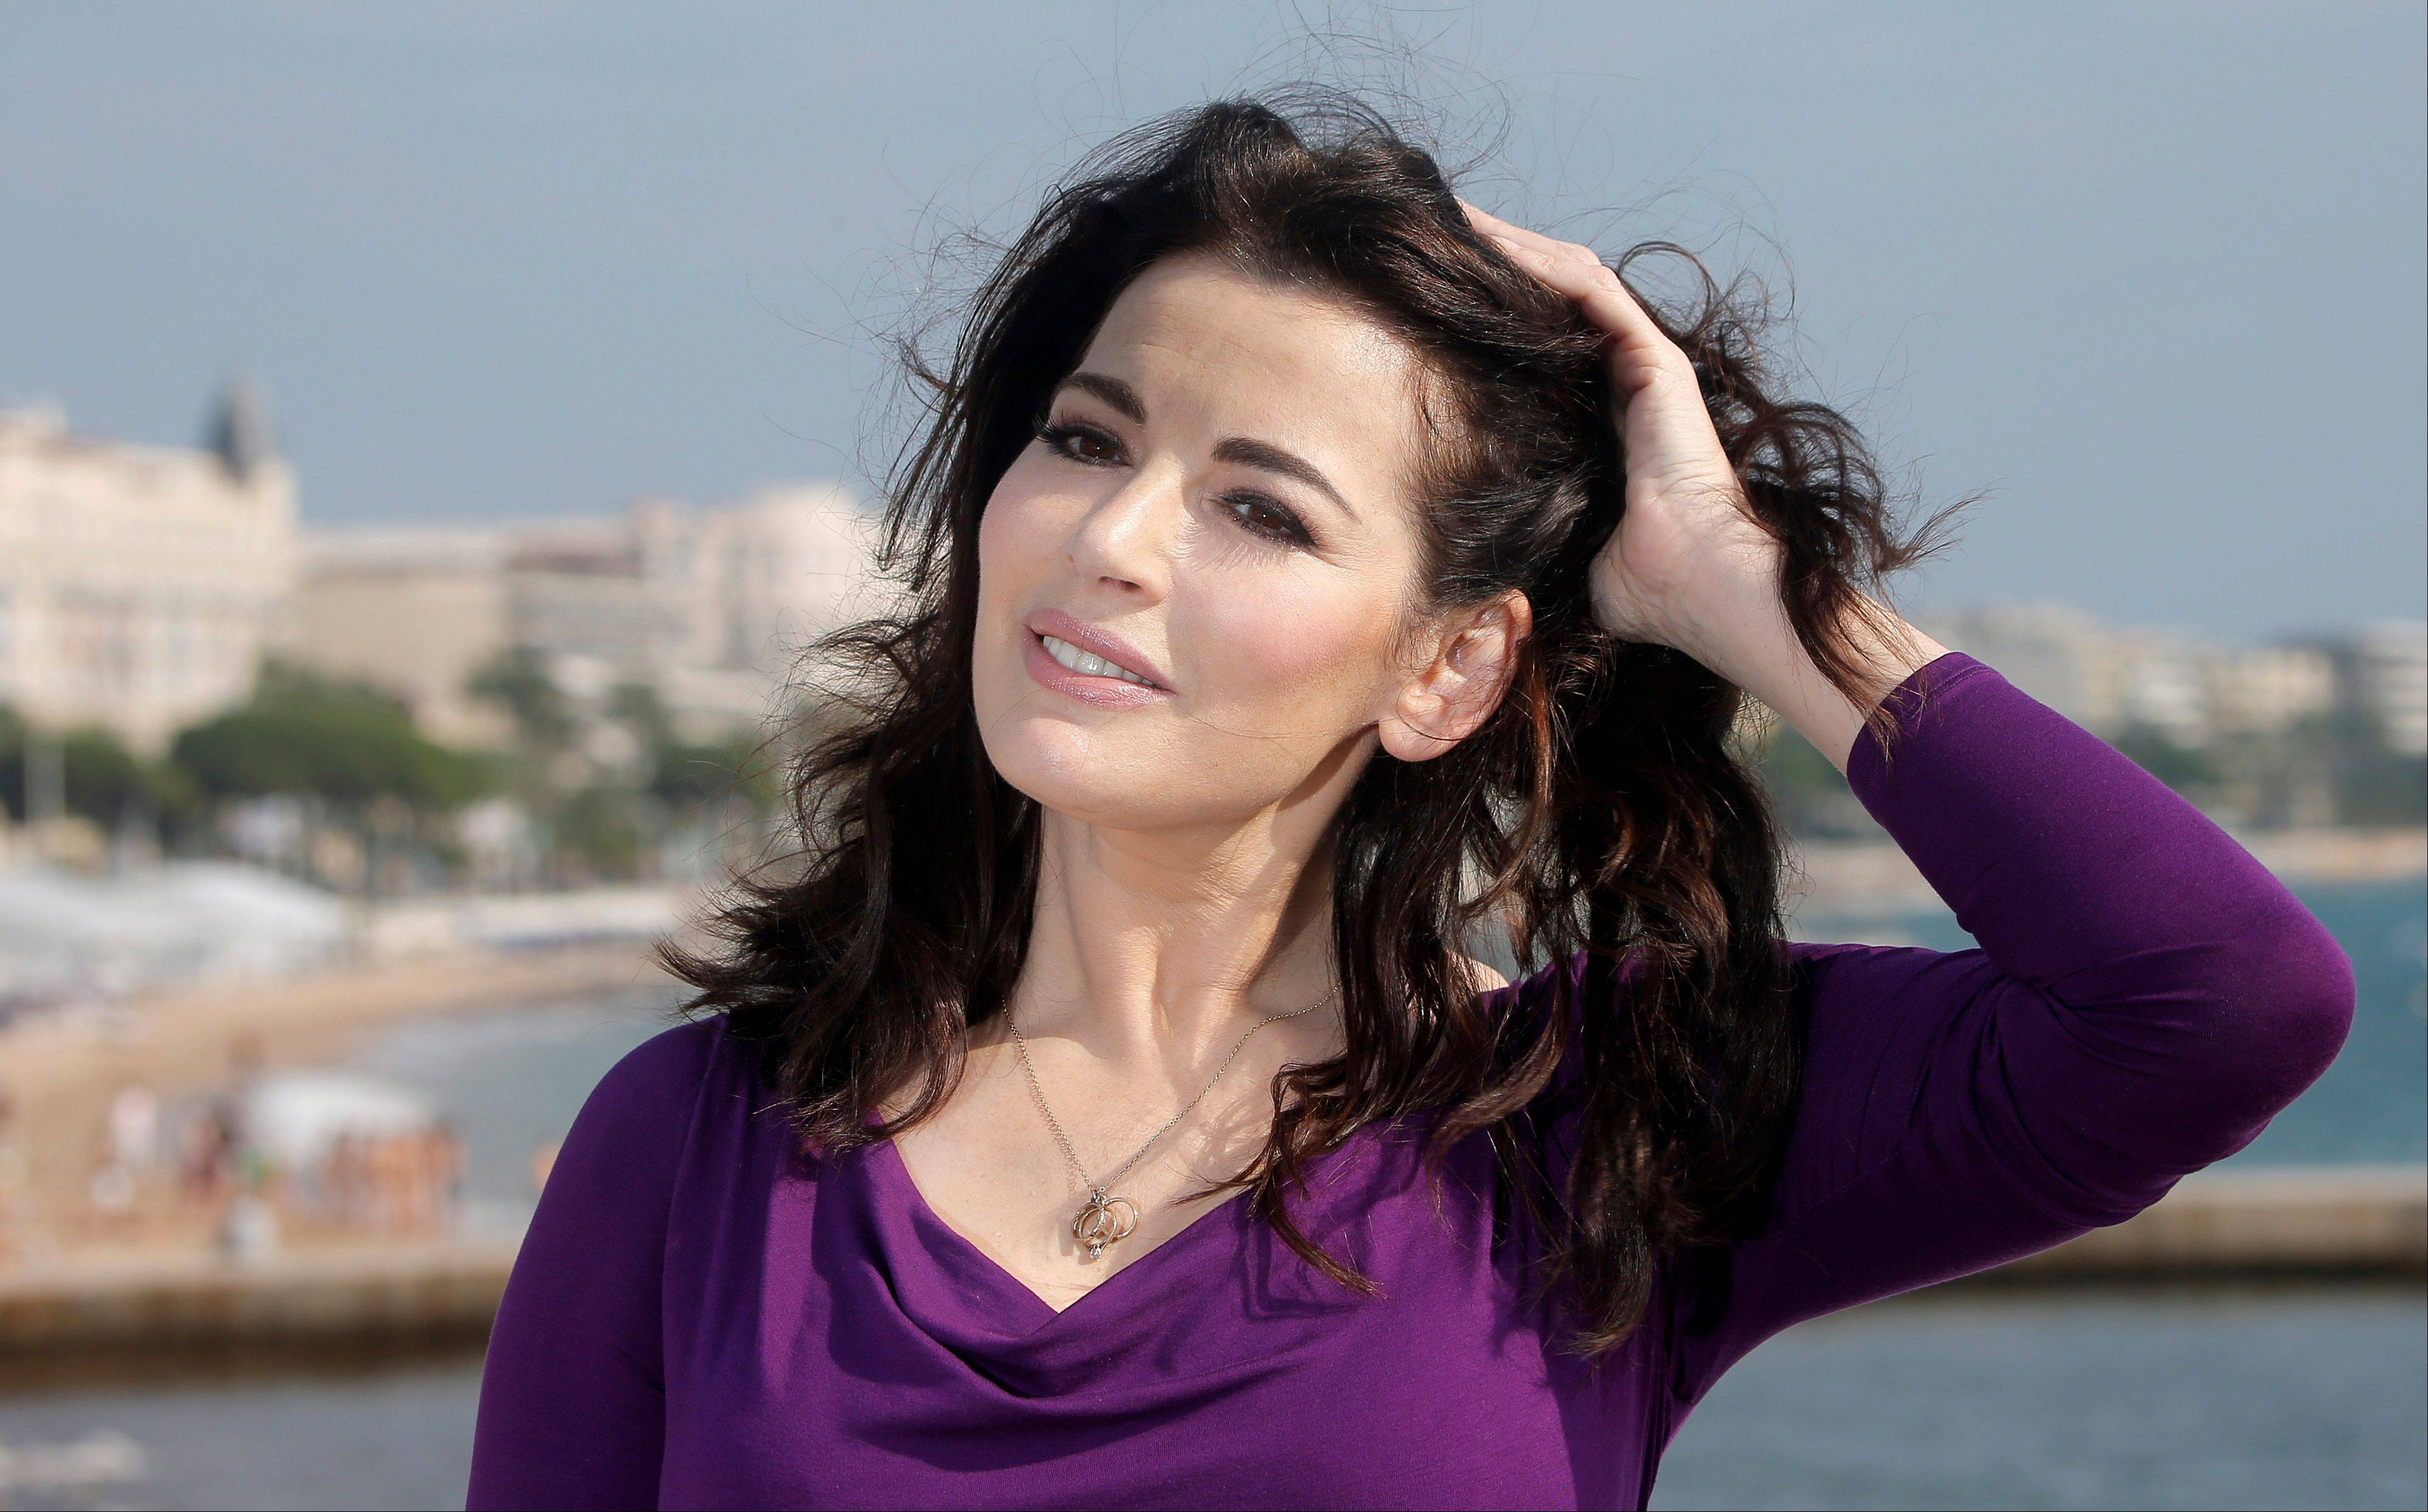 English food writer, journalist and broadcaster, Nigella Lawson. British police say they are investigating after a newspaper published photos of Nigella Lawson's husband Charles Saatchi with his hands around the celebrity chef's throat. The Sunday People newspaper ran pictures of what it said was the couple's violent argument at a London restaurant on June 9, 2013.